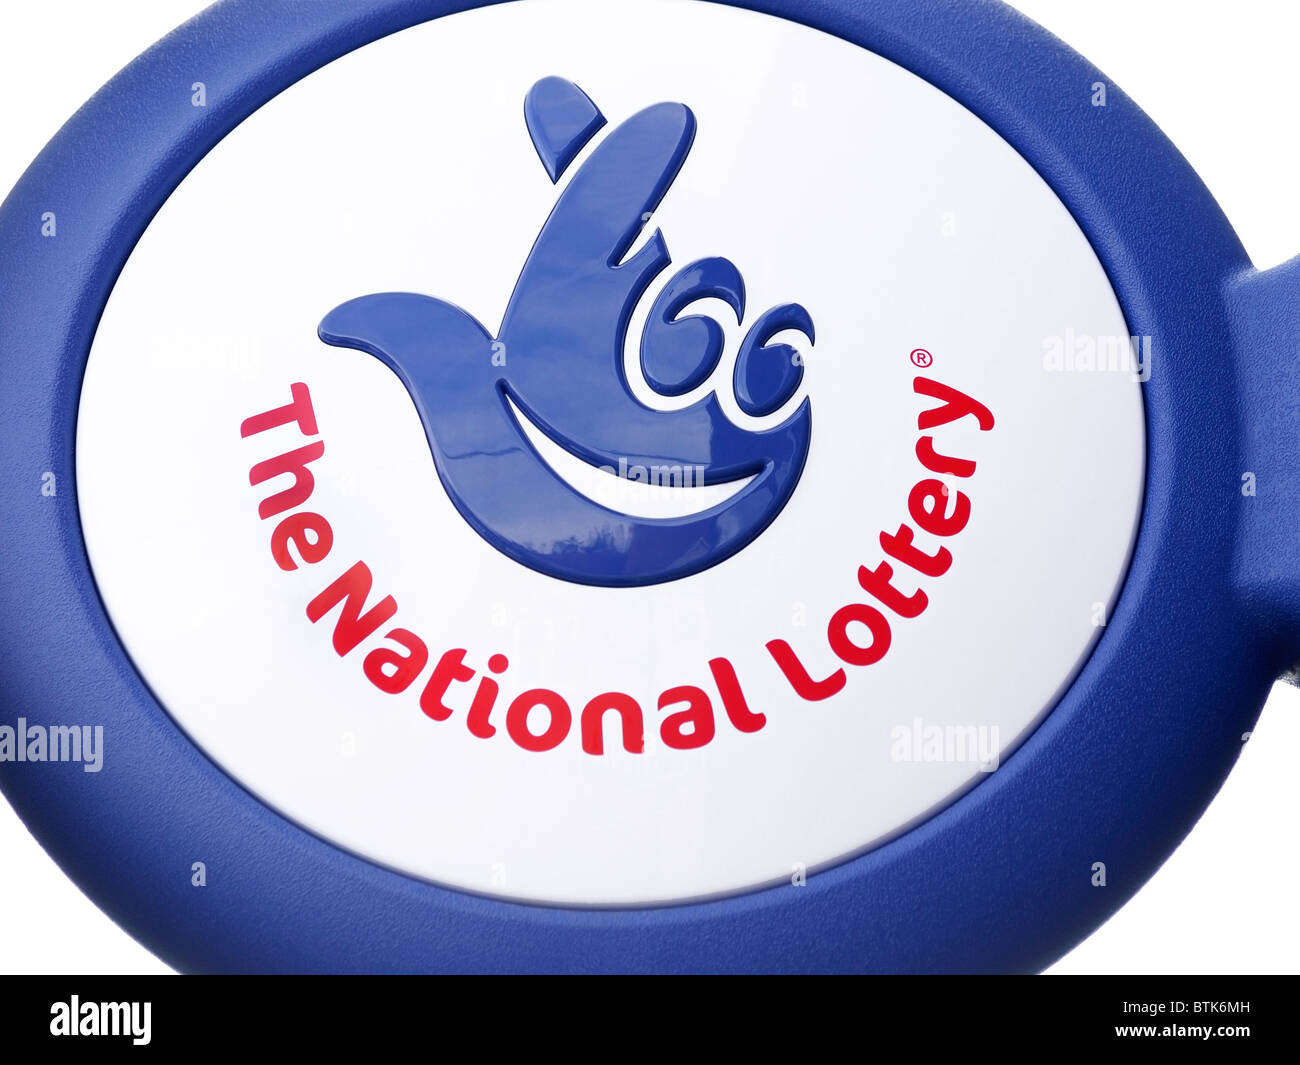 The National Lottery Sign on a Shop Exterior, UK. - Stock Image